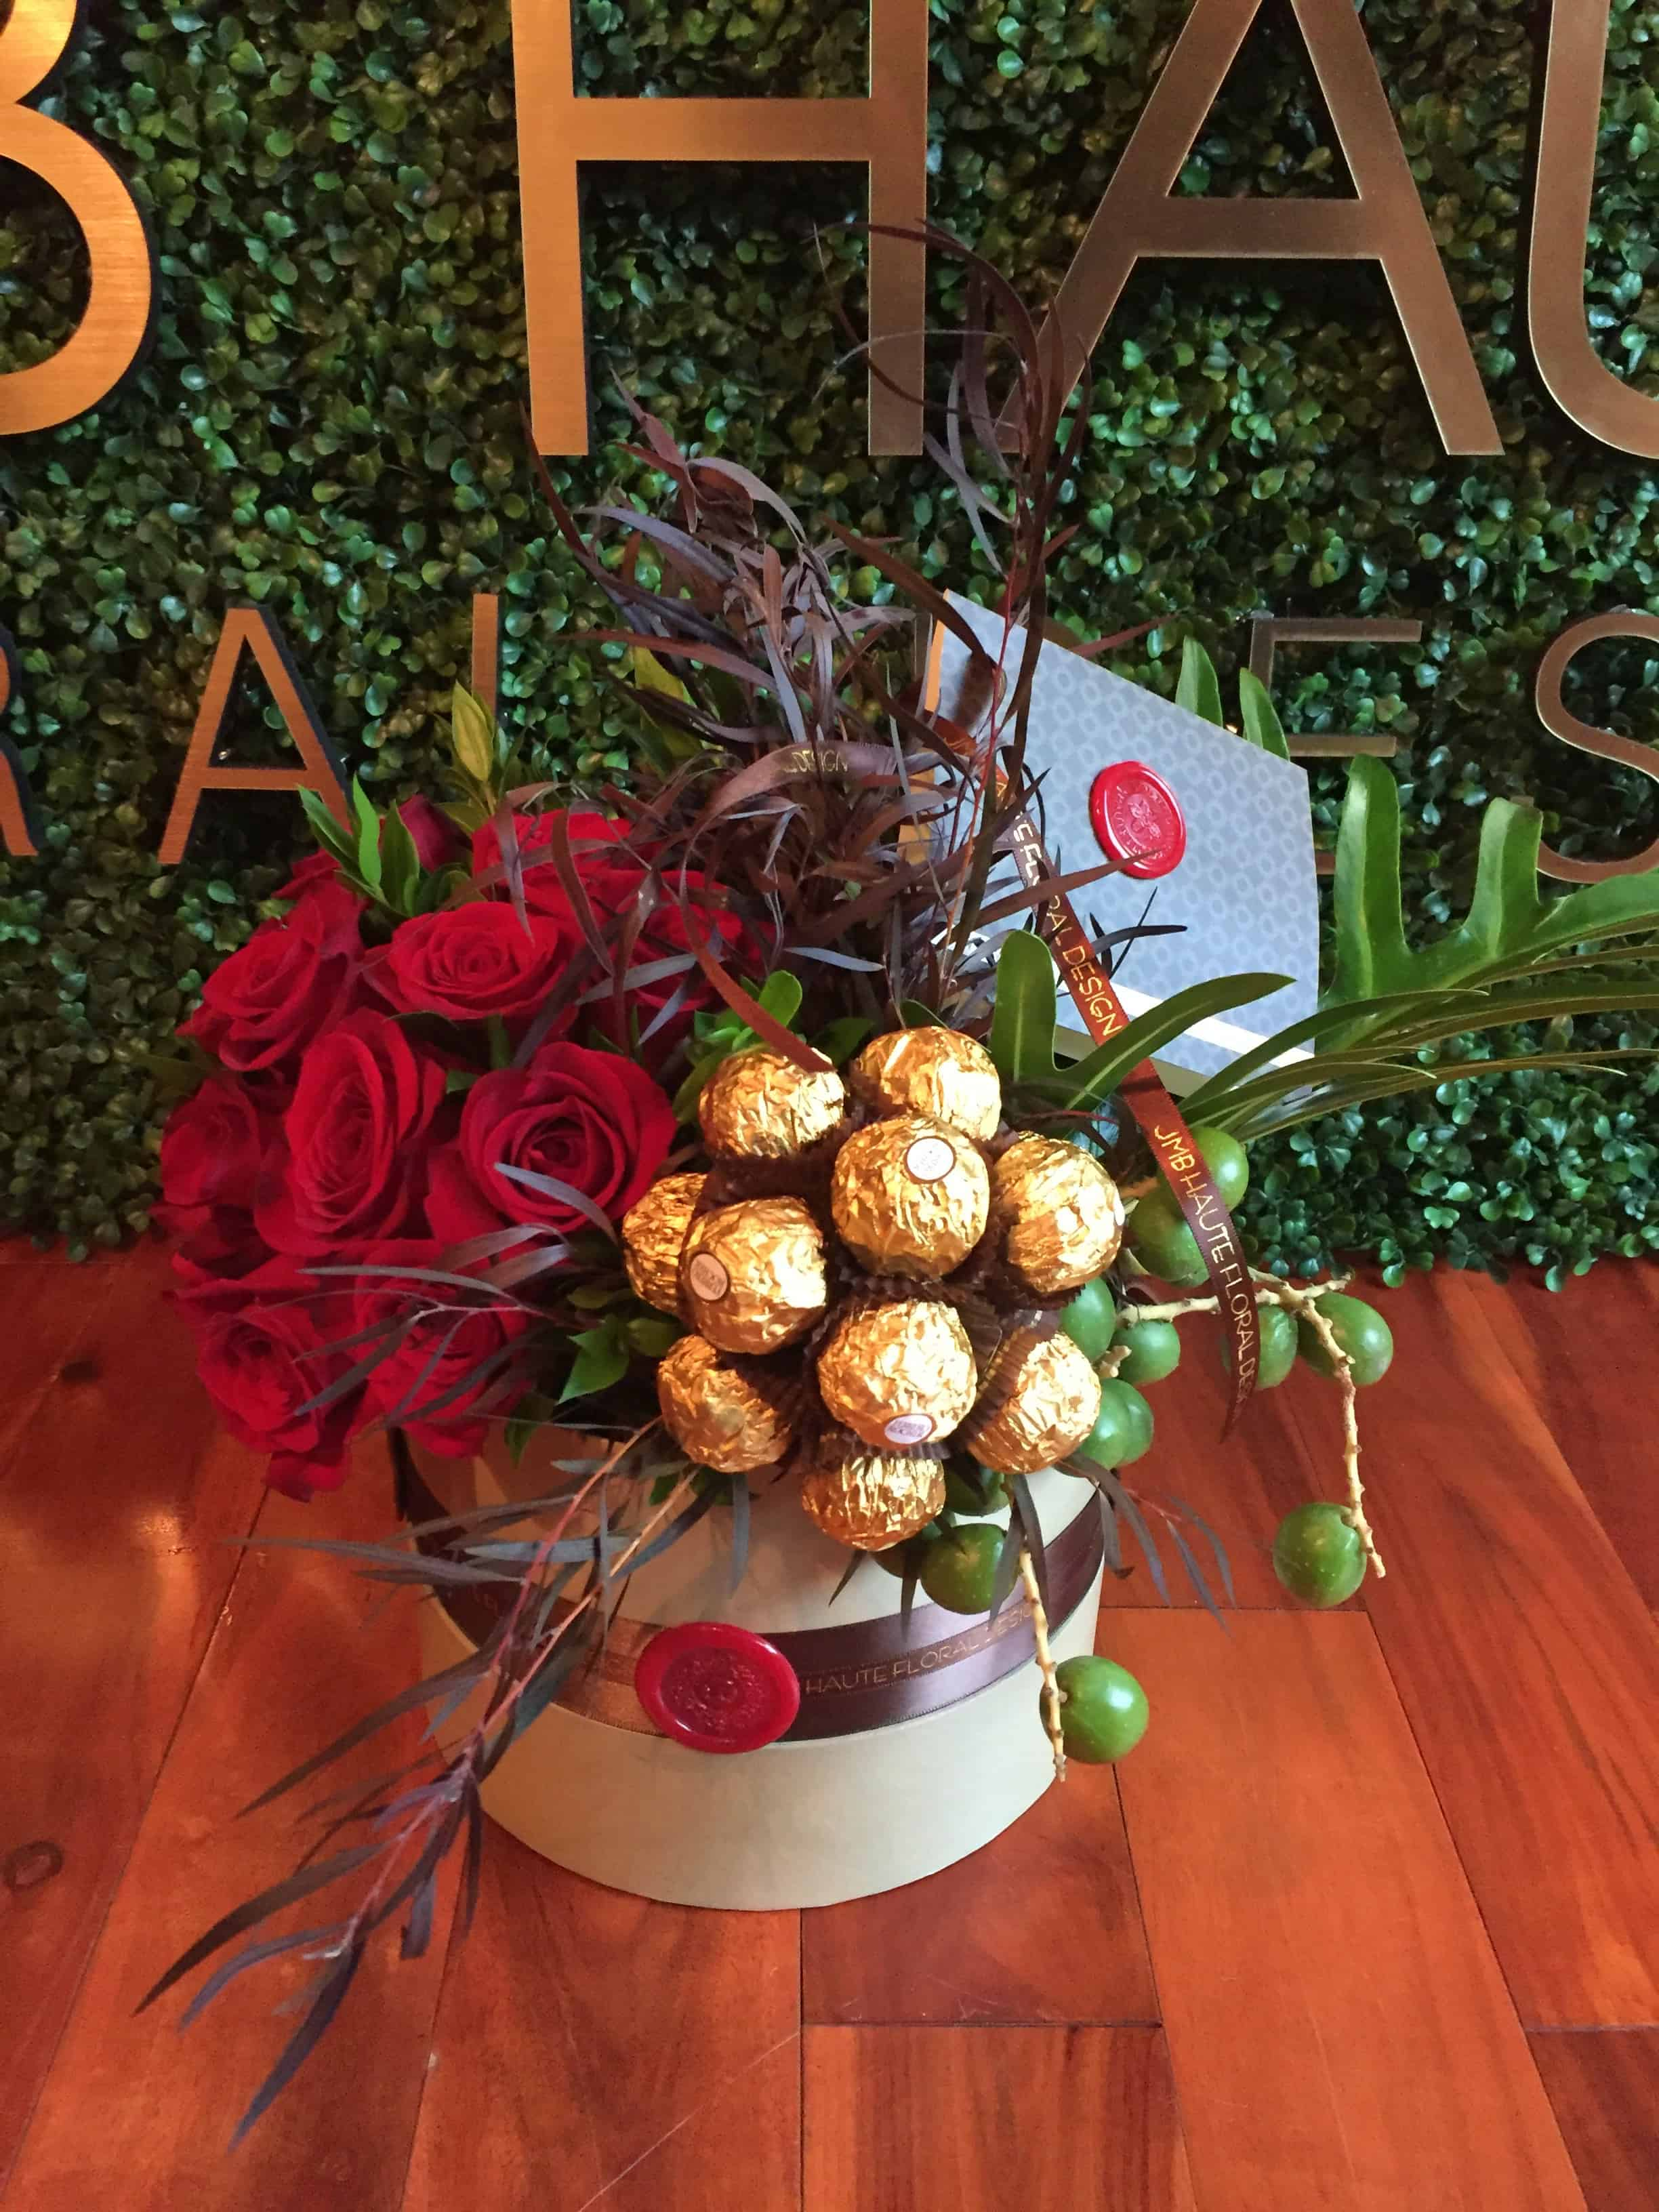 A Sphere of red roses and a sphere of chocolates surrounded by seasonal foliage in a round box